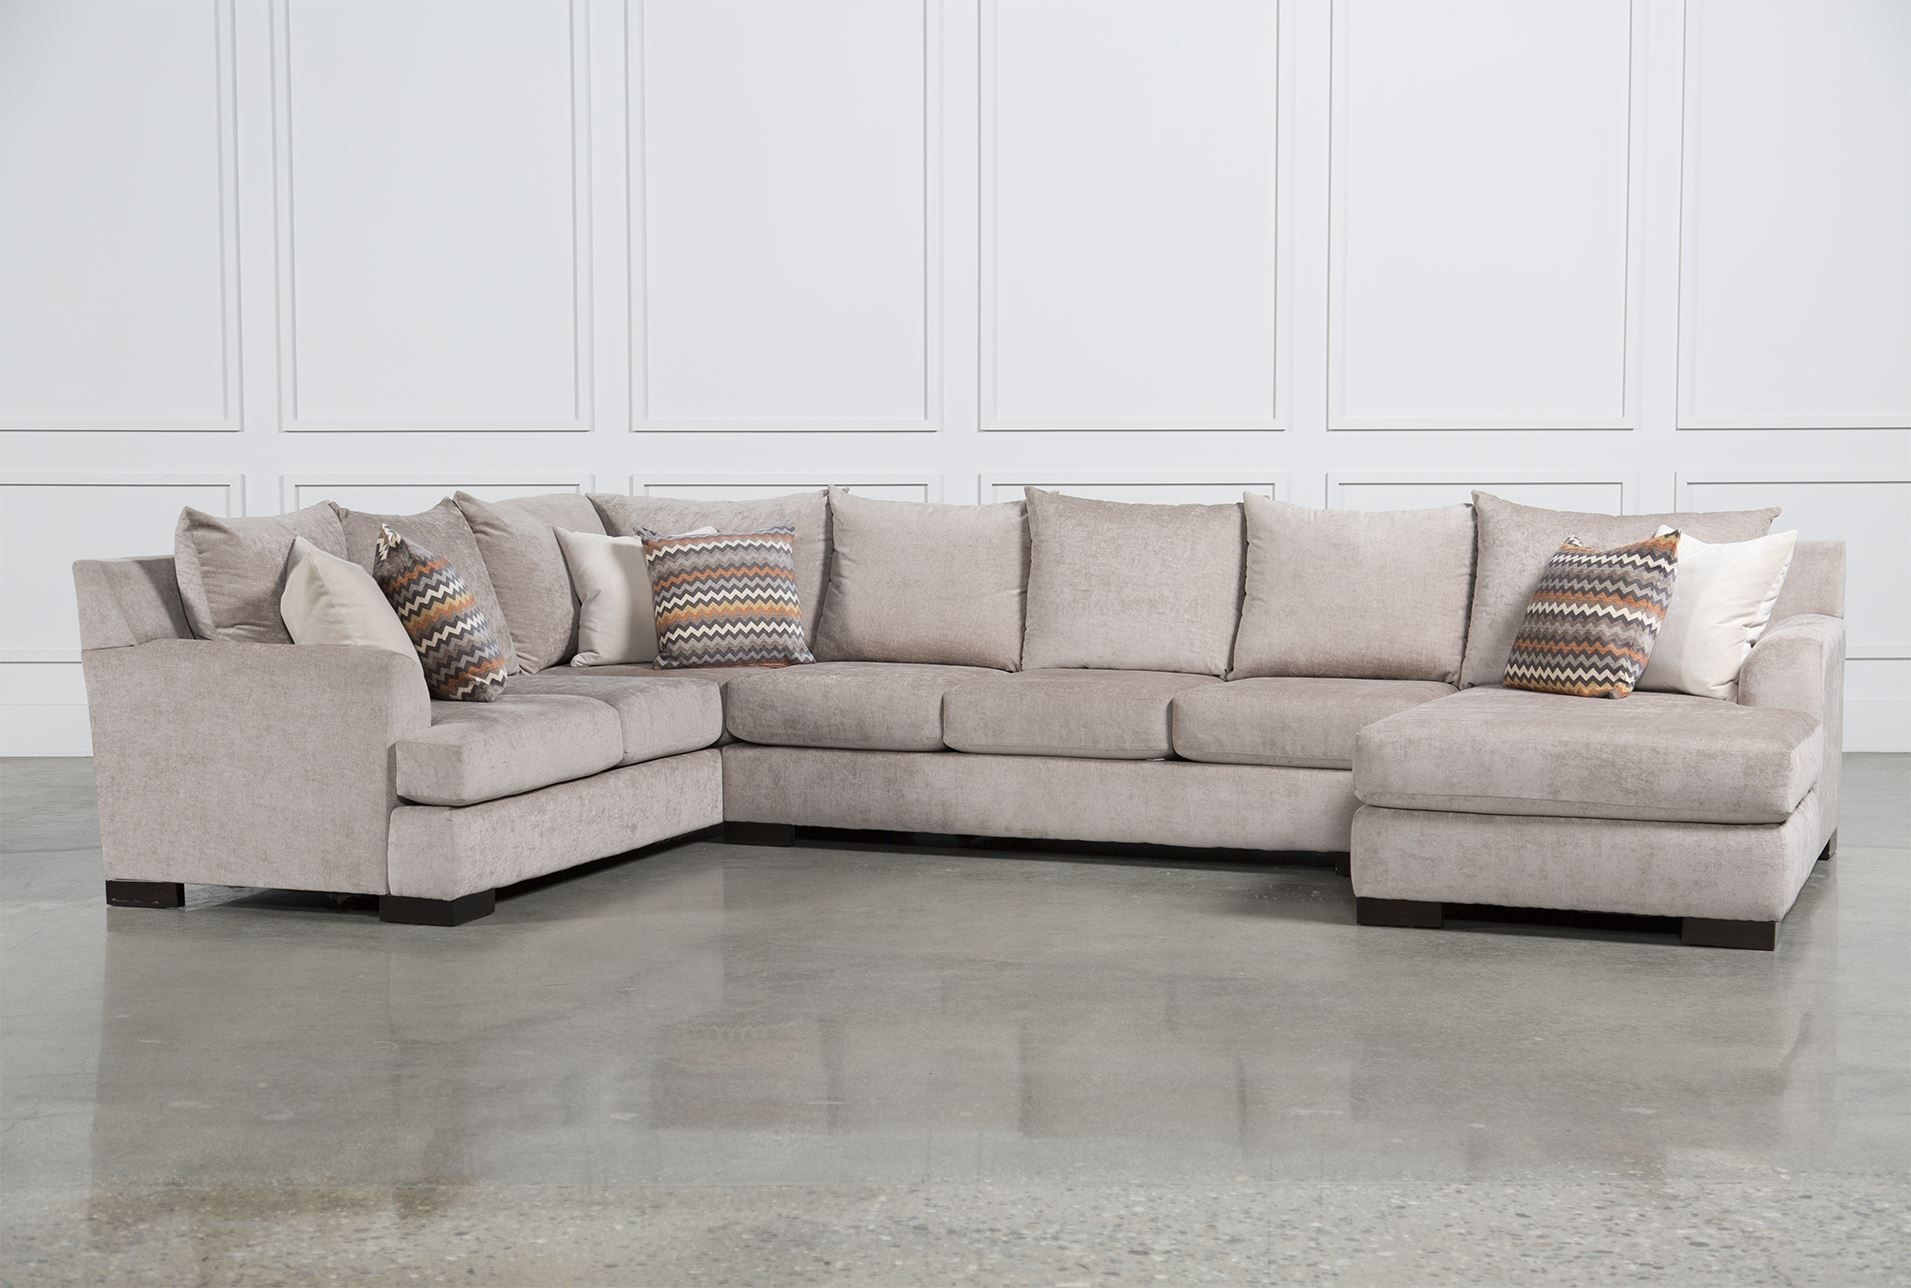 Living Space Sectional Sofa - Sofa Design Ideas regarding Aquarius Light Grey 2 Piece Sectionals With Laf Chaise (Image 17 of 30)